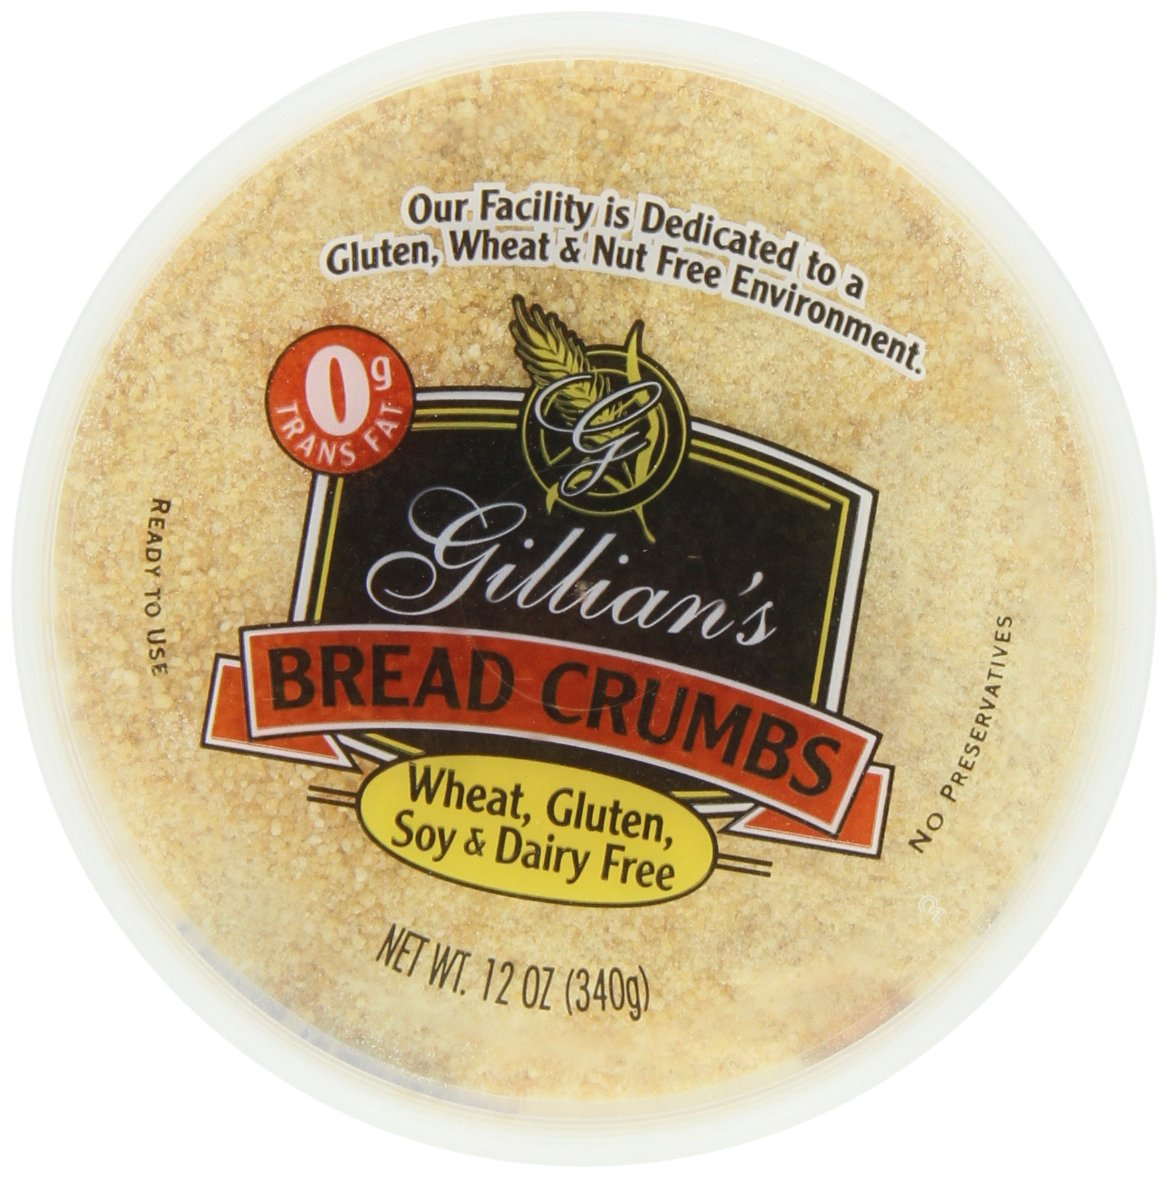 Gillian Bread Crumbs Wheat Free Gluten Free Dairy Free, 12-Ounce (Pack of 4) by Gillian